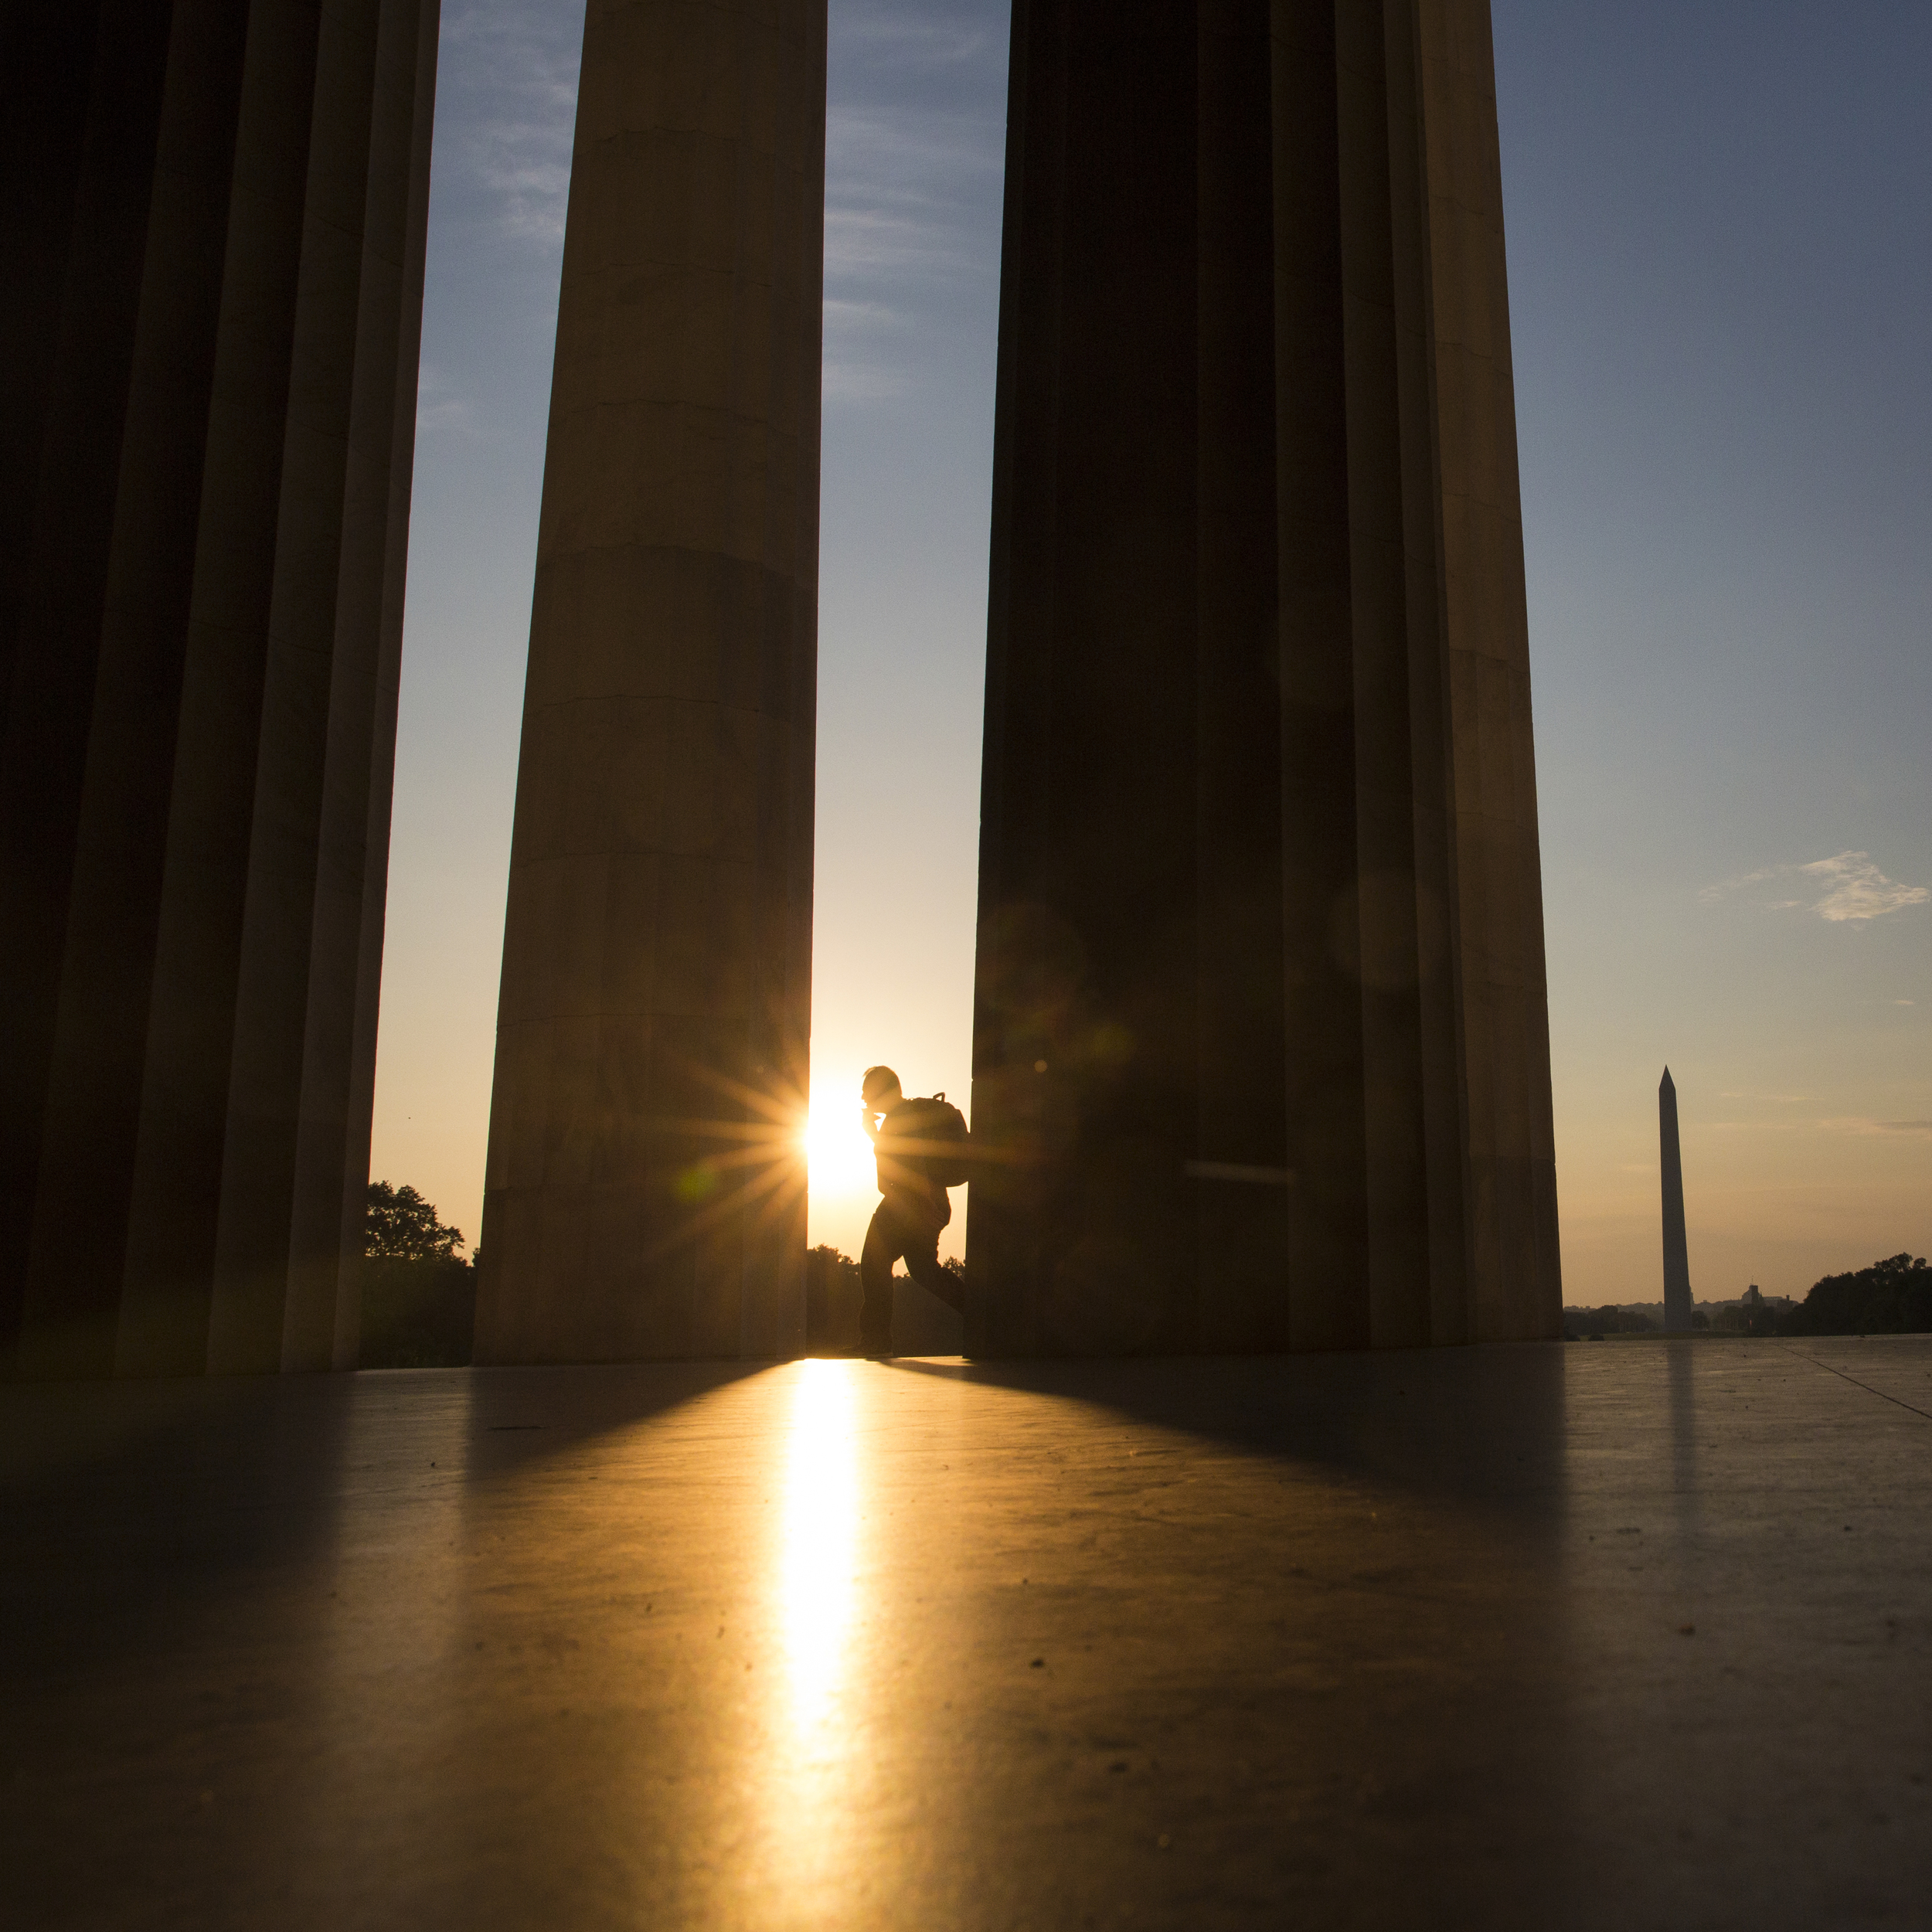 A man walks along the columns at the Lincoln Memorial on the morning of Wednesday June 4, 2014. The Lincoln Memorial is an American national monument built to honor the 16th President of the United States, Abraham Lincoln. The building is in the form of a Greek Doric temple and contains a large seated sculpture of Abraham Lincoln and inscriptions of two well-known speeches by Lincoln, The Gettysburg Address and his Second Inaugural Address.